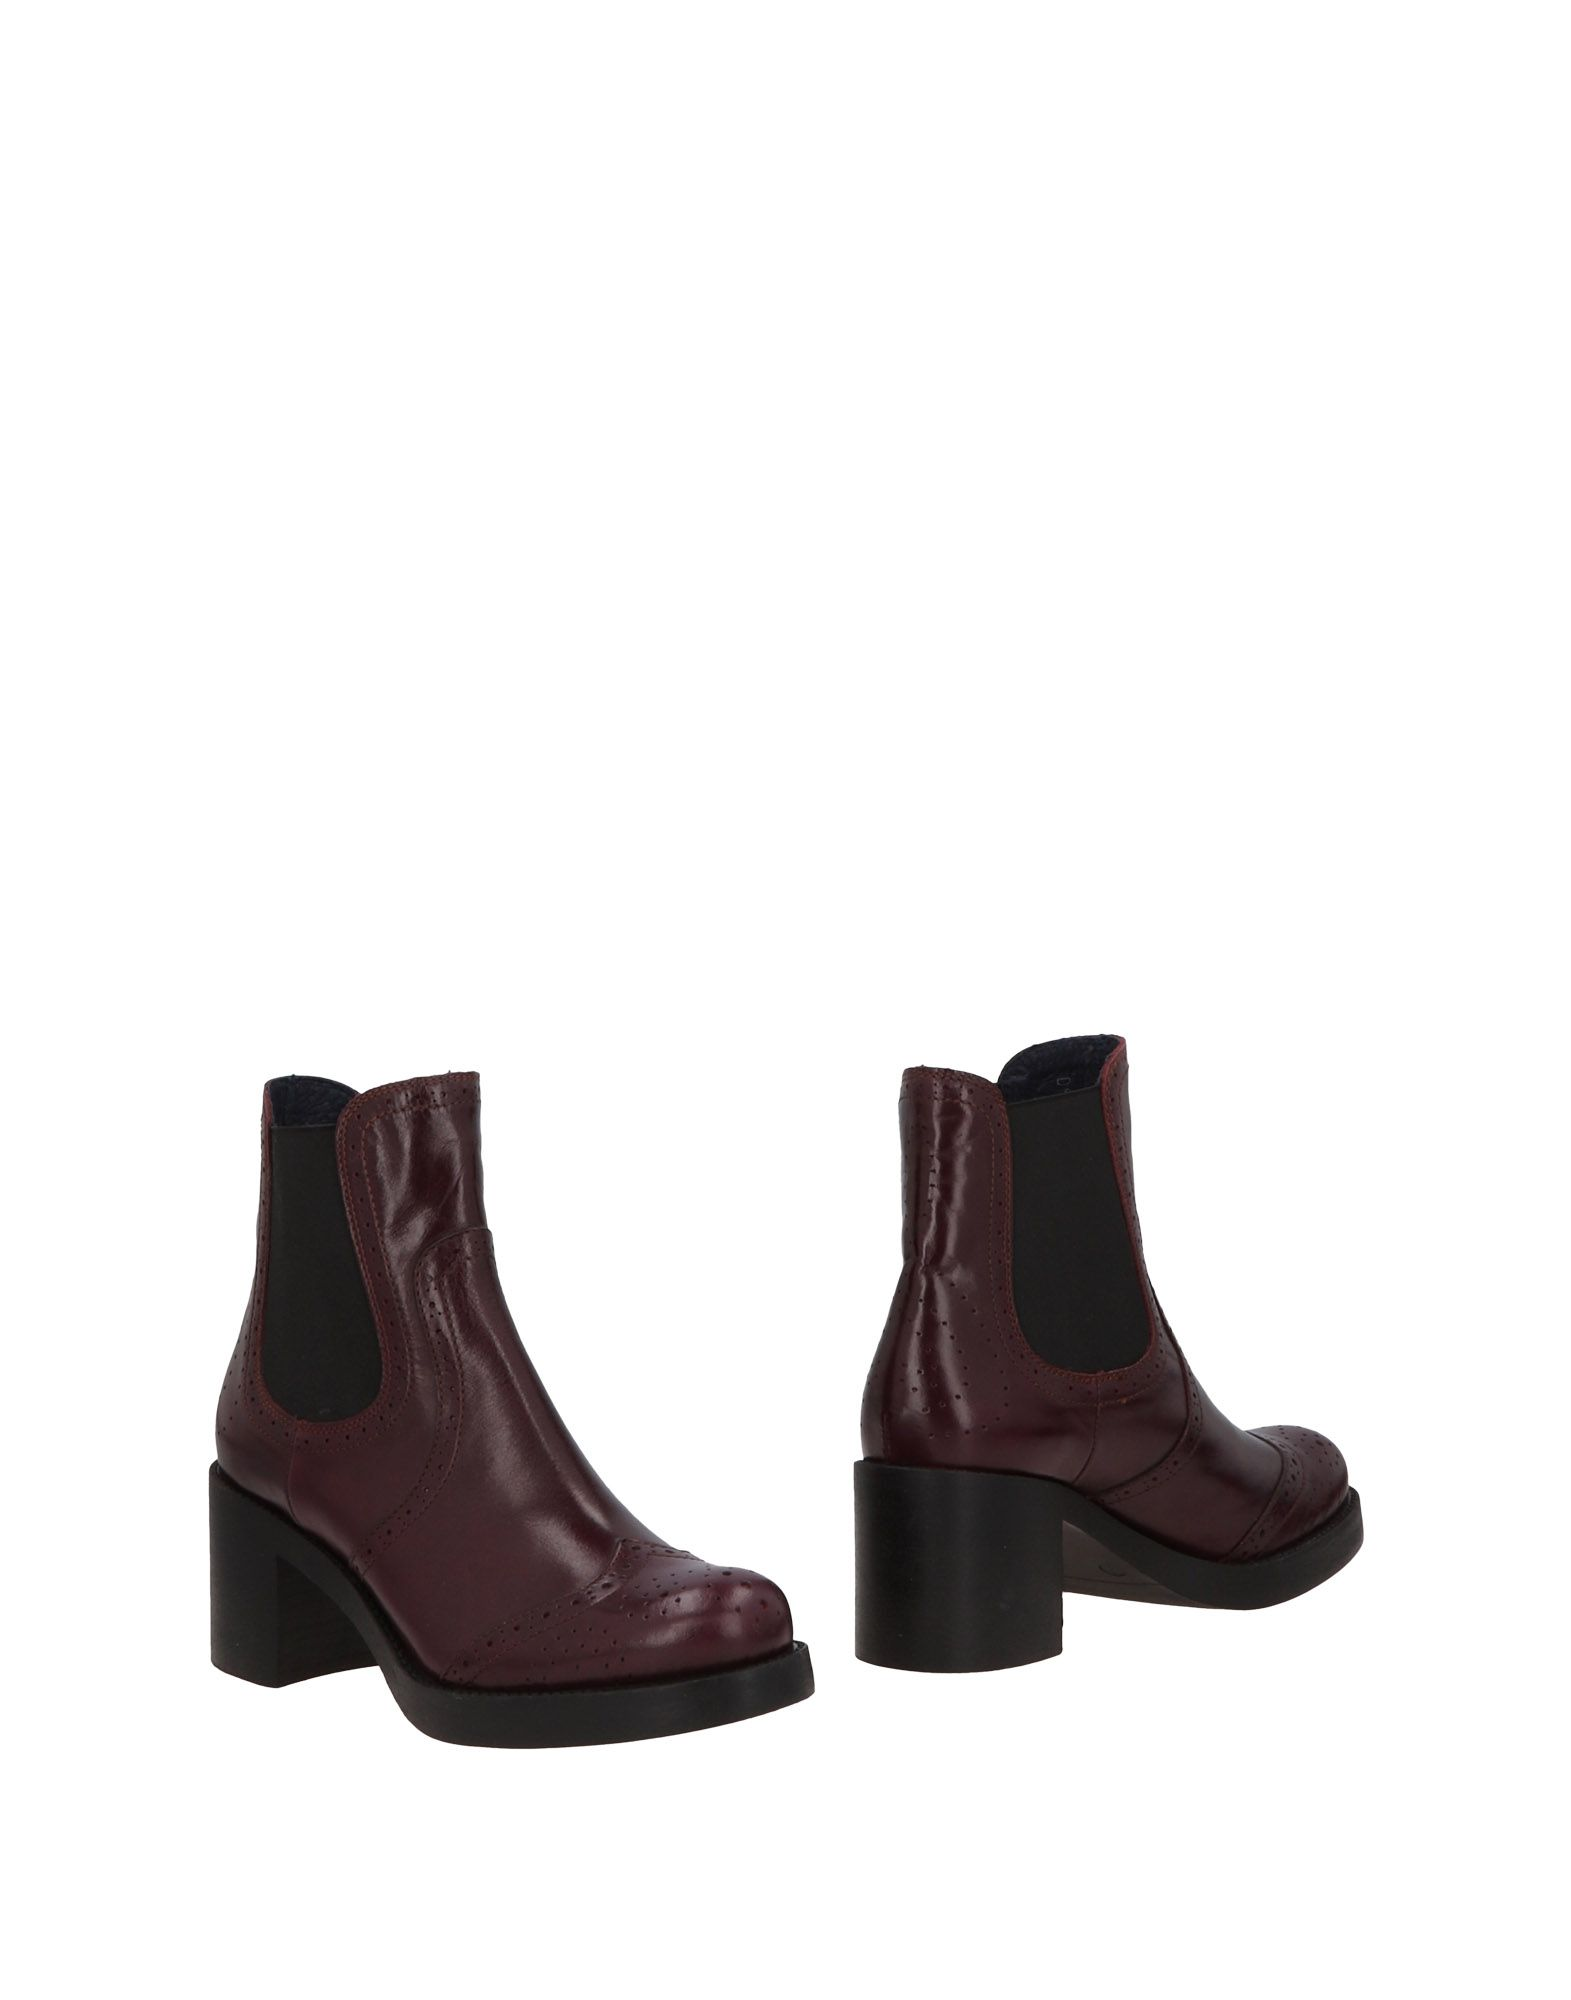 Docksteps Ankle Boot - Women Docksteps Ankle Boots online 11477798EB on  Canada - 11477798EB online 657426